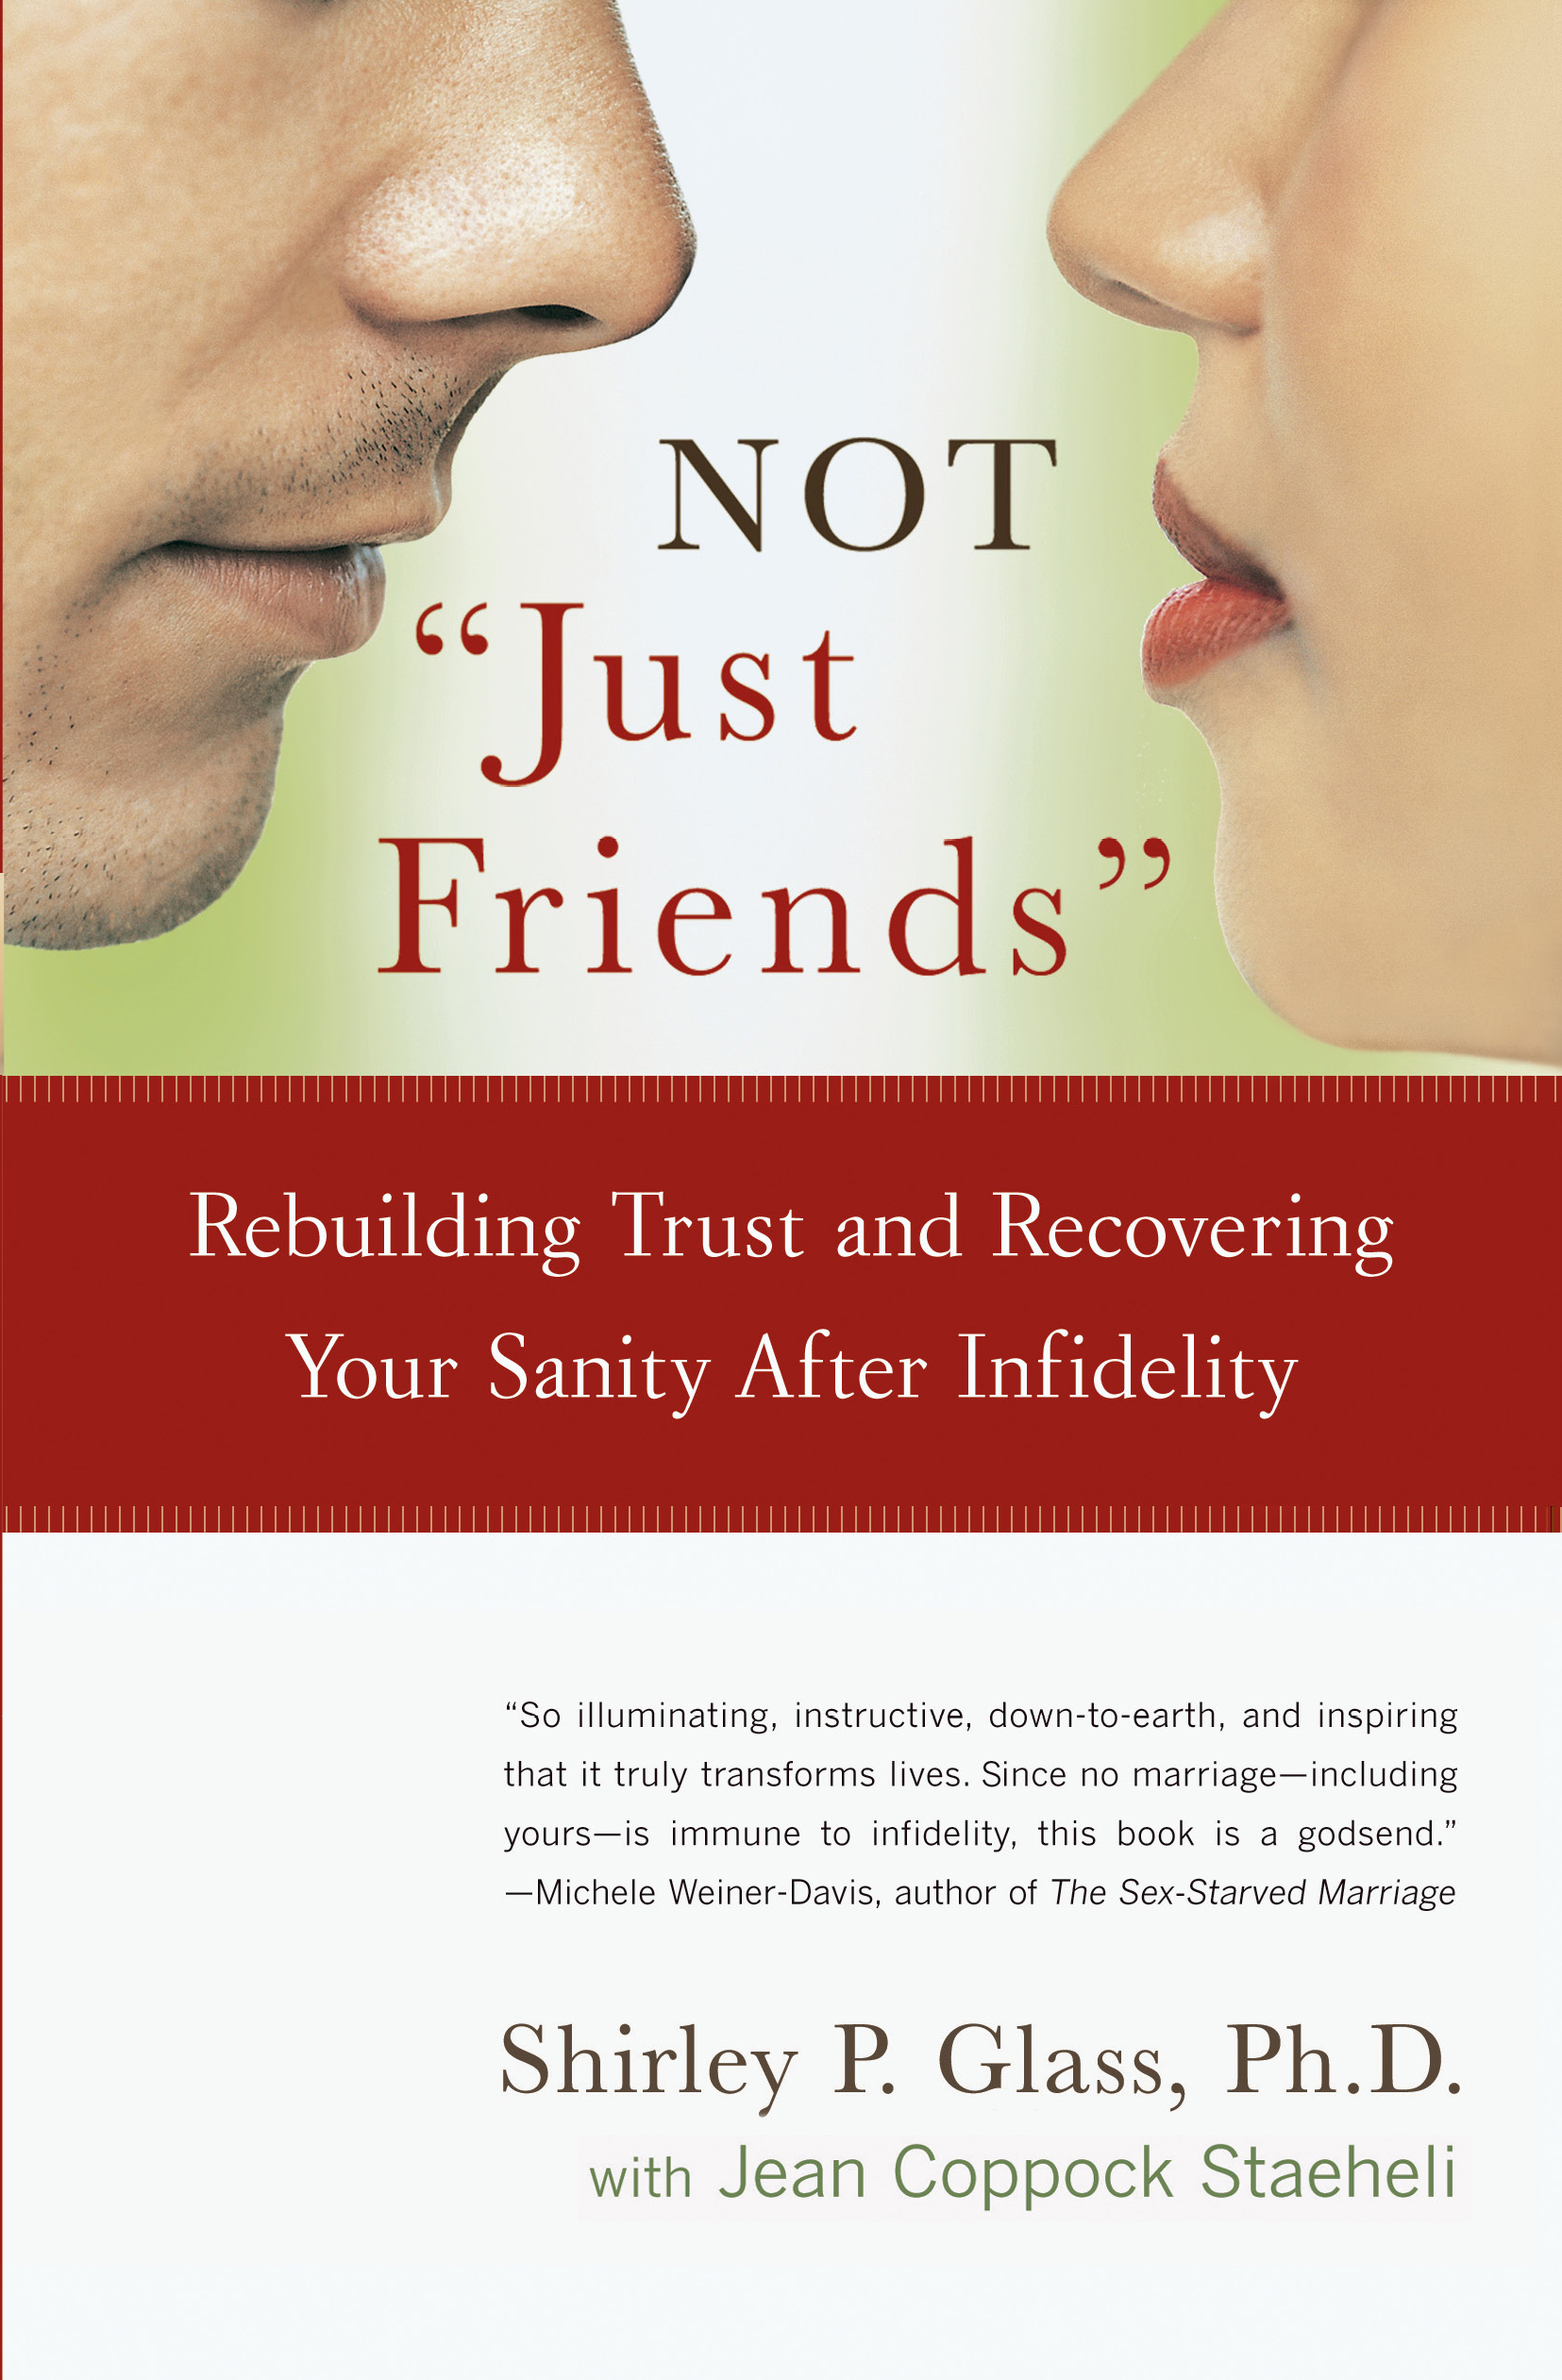 Not just friends book by shirley glass jean coppock staeheli cvr9780743225502 9780743225502 hr fandeluxe PDF